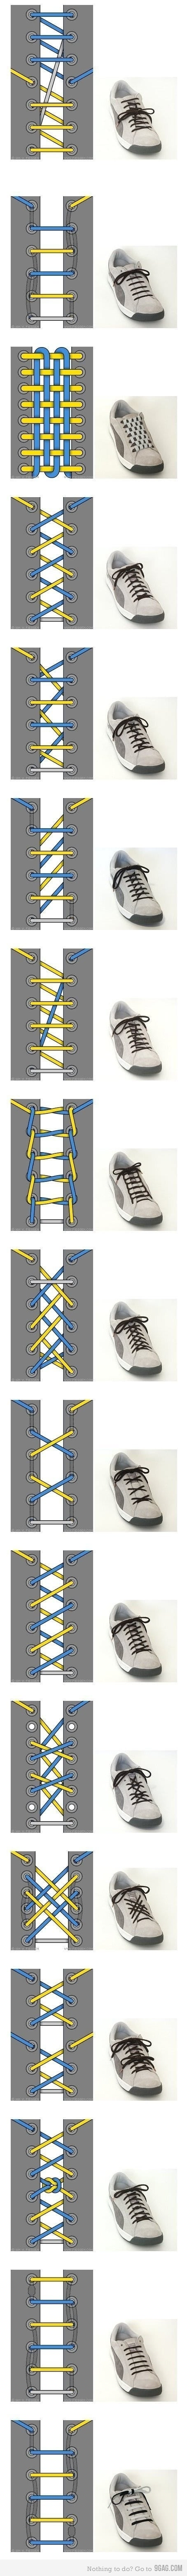 17 Popular And Creative Ways You Can Tie Your Shoes